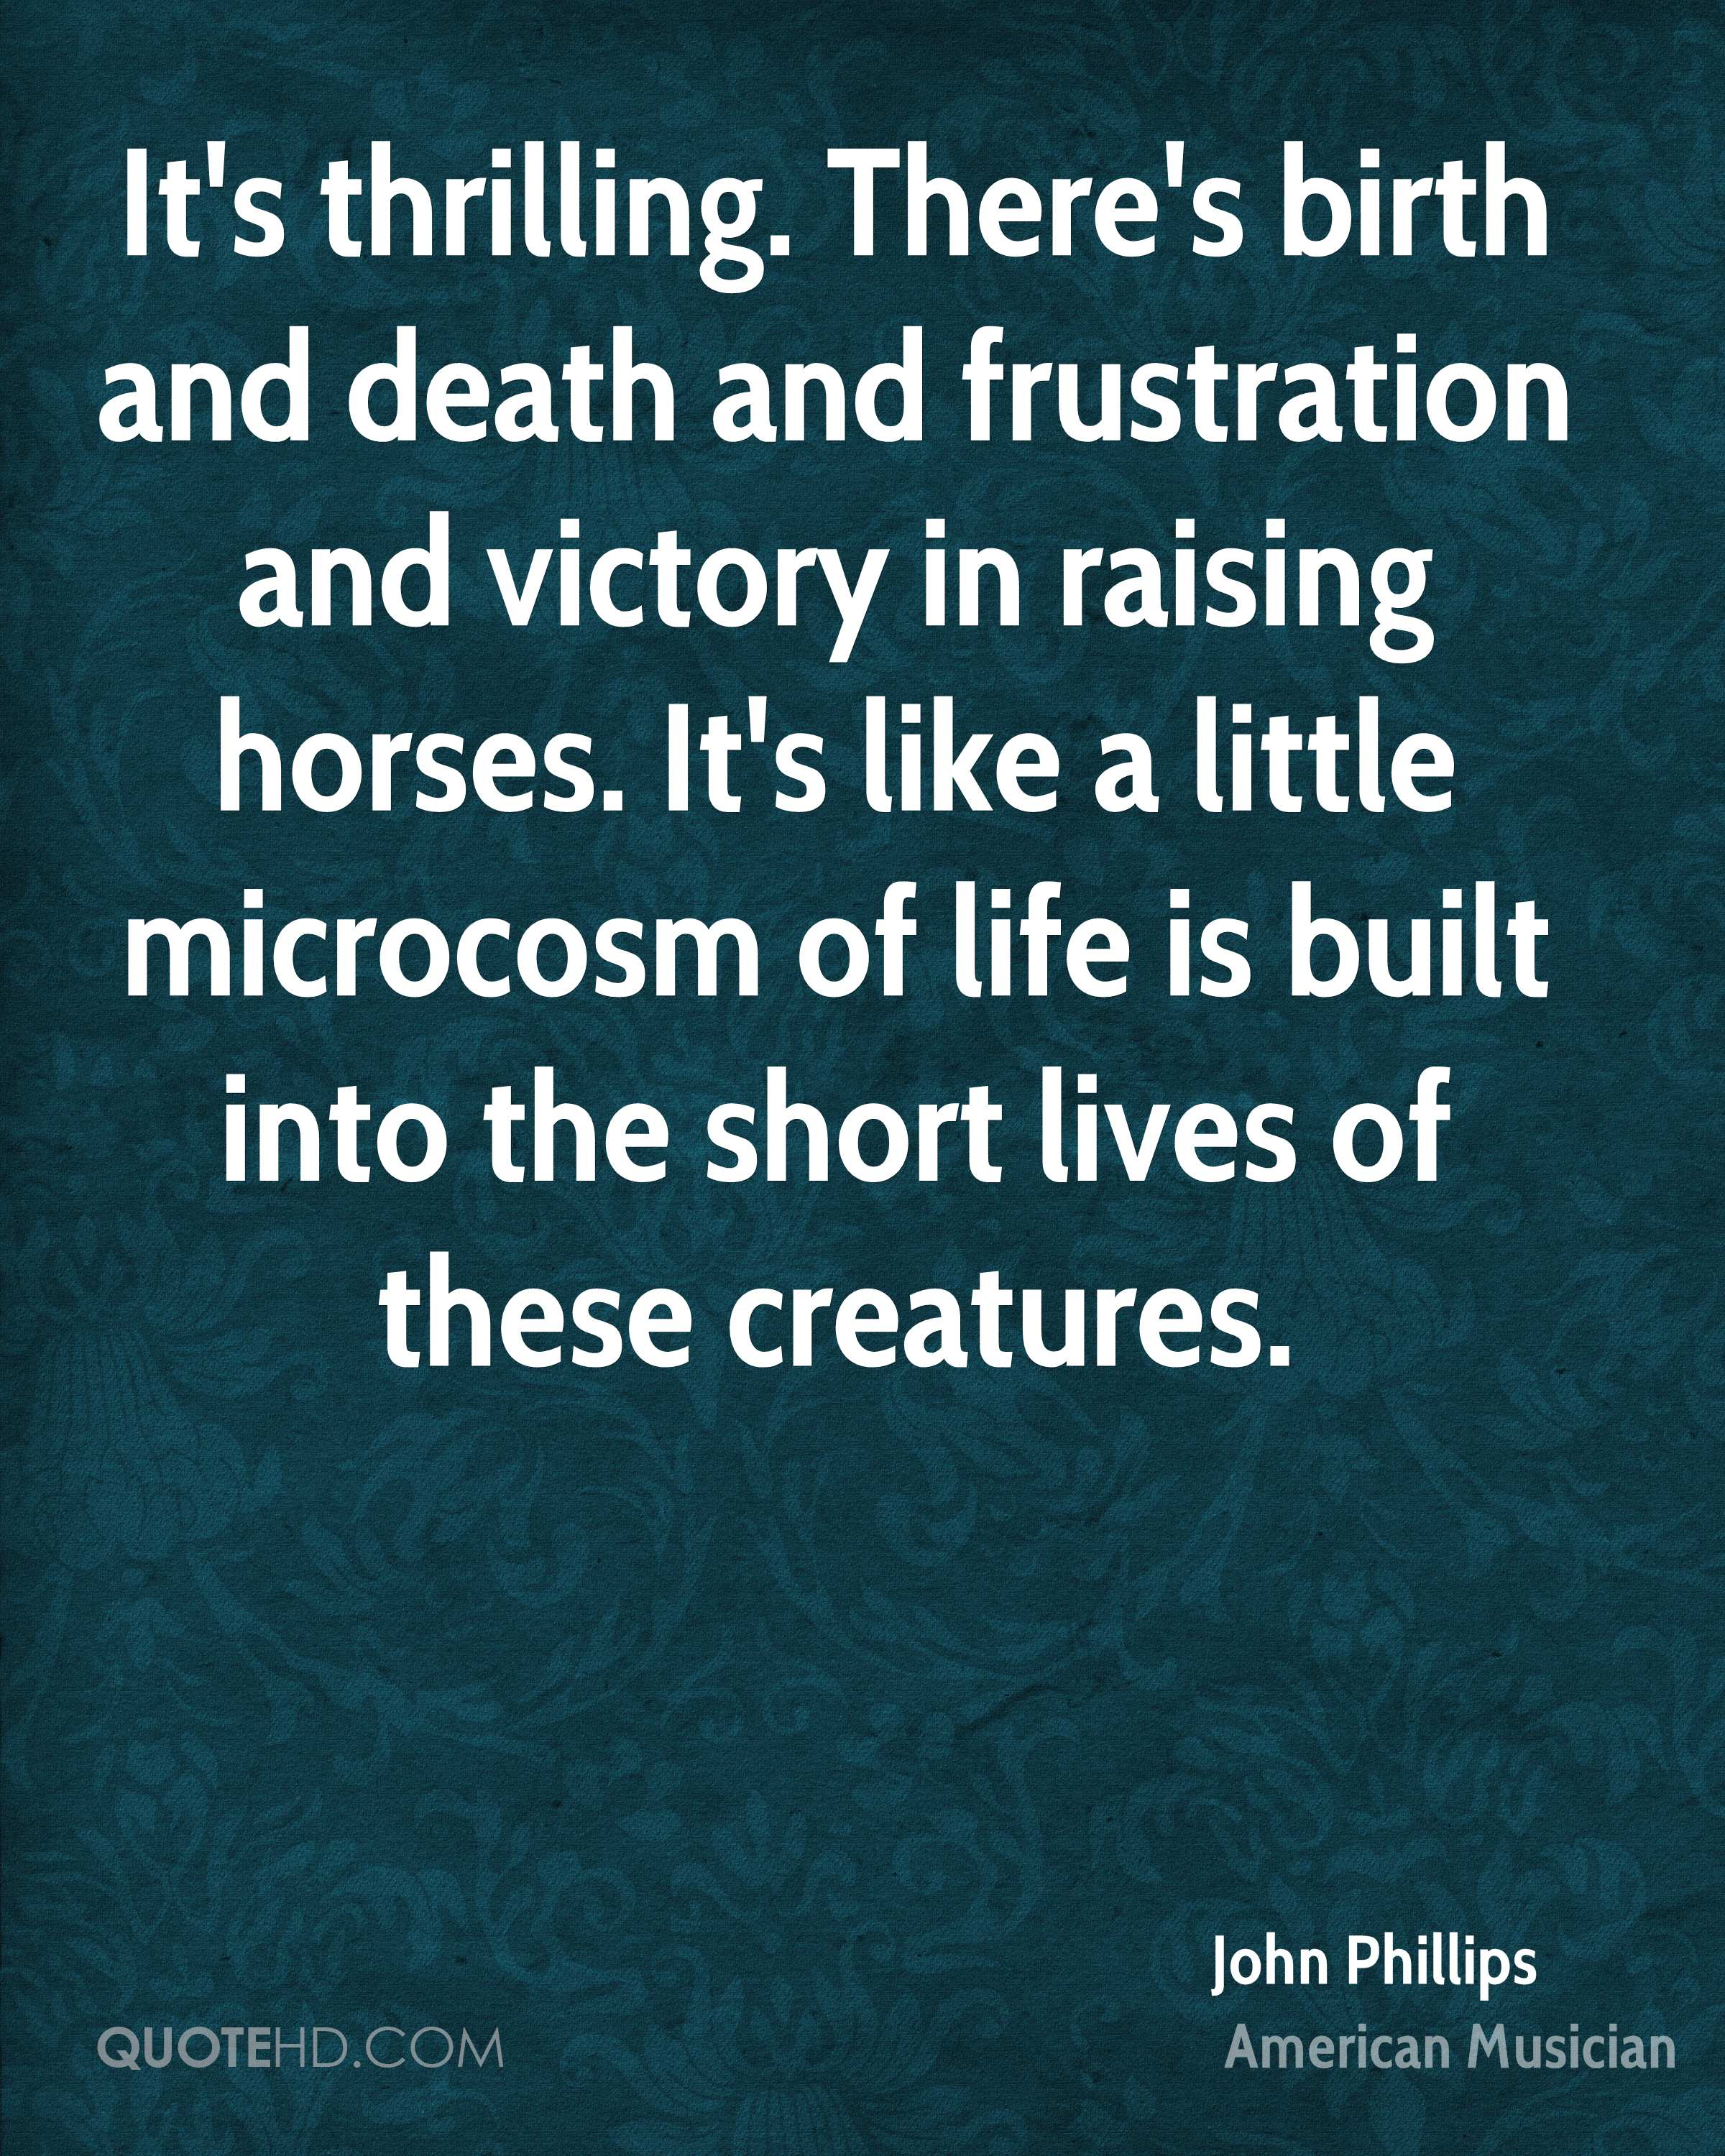 It's thrilling. There's birth and death and frustration and victory in raising horses. It's like a little microcosm of life is built into the short lives of these creatures.